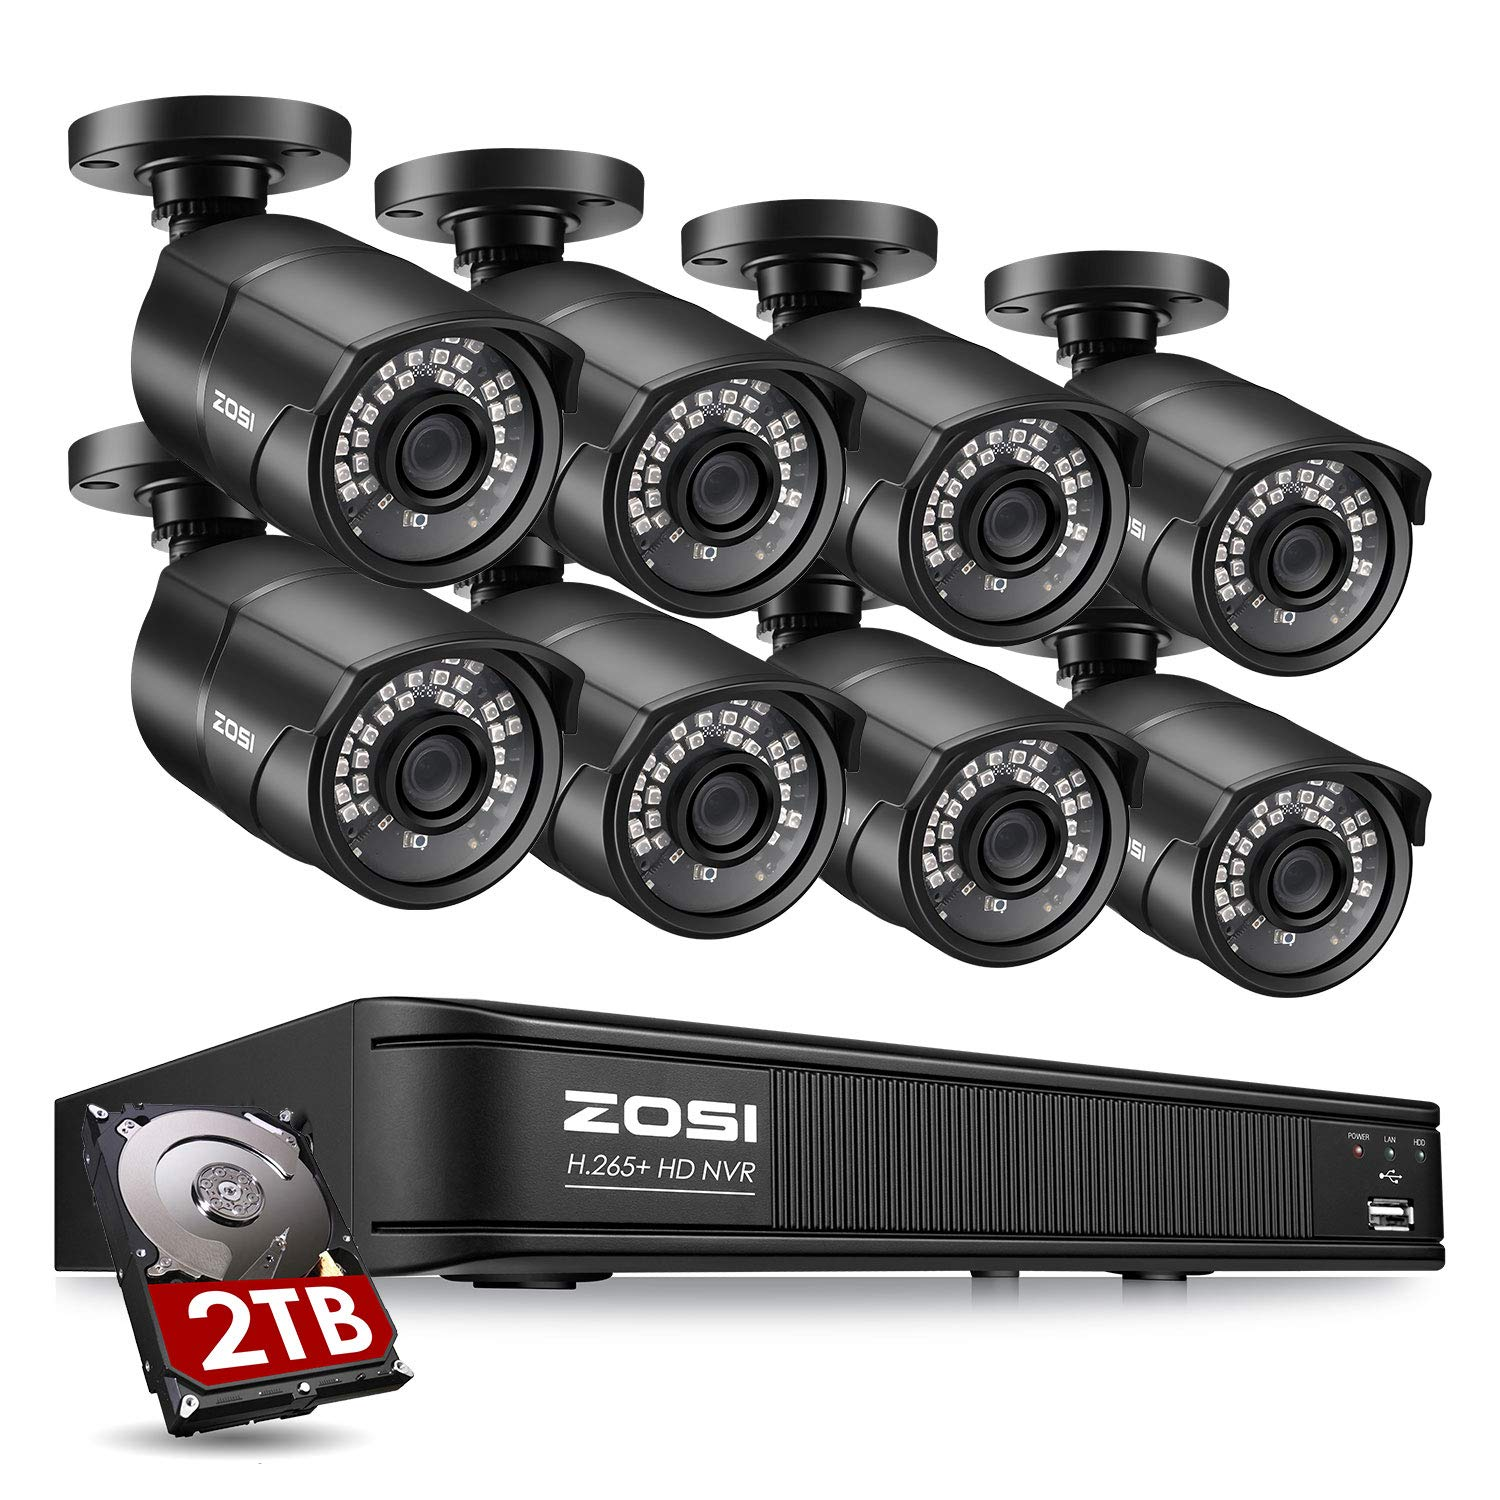 ZOSI 1080p H.265+ PoE Home Security Camera System Outdoor Indoor,8CH 5MP PoE NVR Recorder and (8) 1080p Surveillance Bullet IP Cameras with 120ft Long Night Vision ( 2TB Hard Drive Built-in)